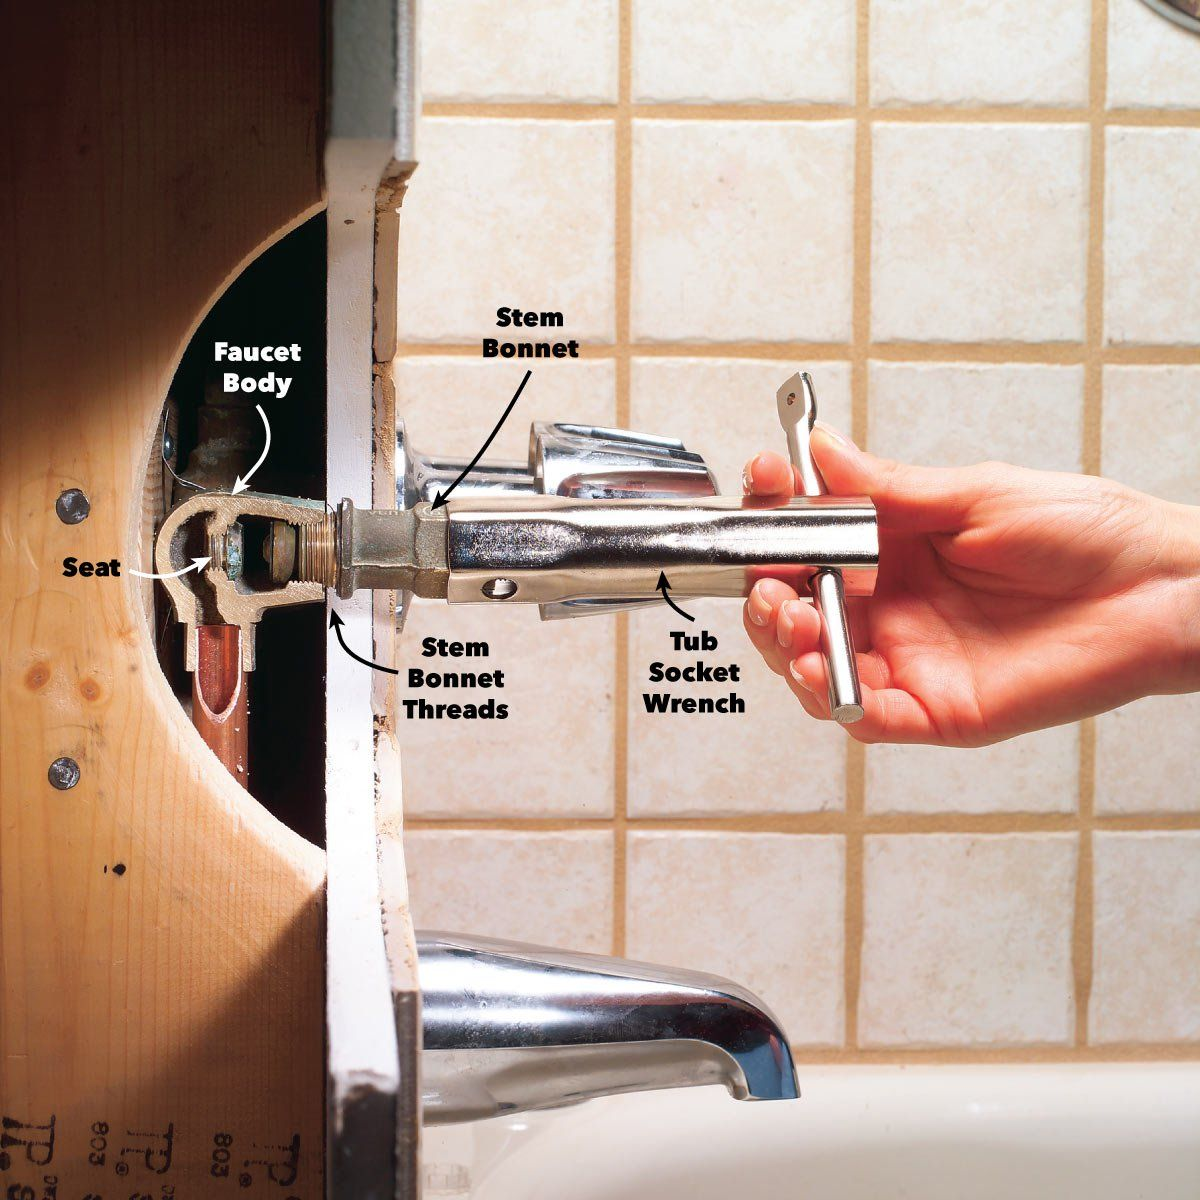 How To Fix A Leaking Bathtub Faucet Faucet Repair Bathtub Faucet Faucet